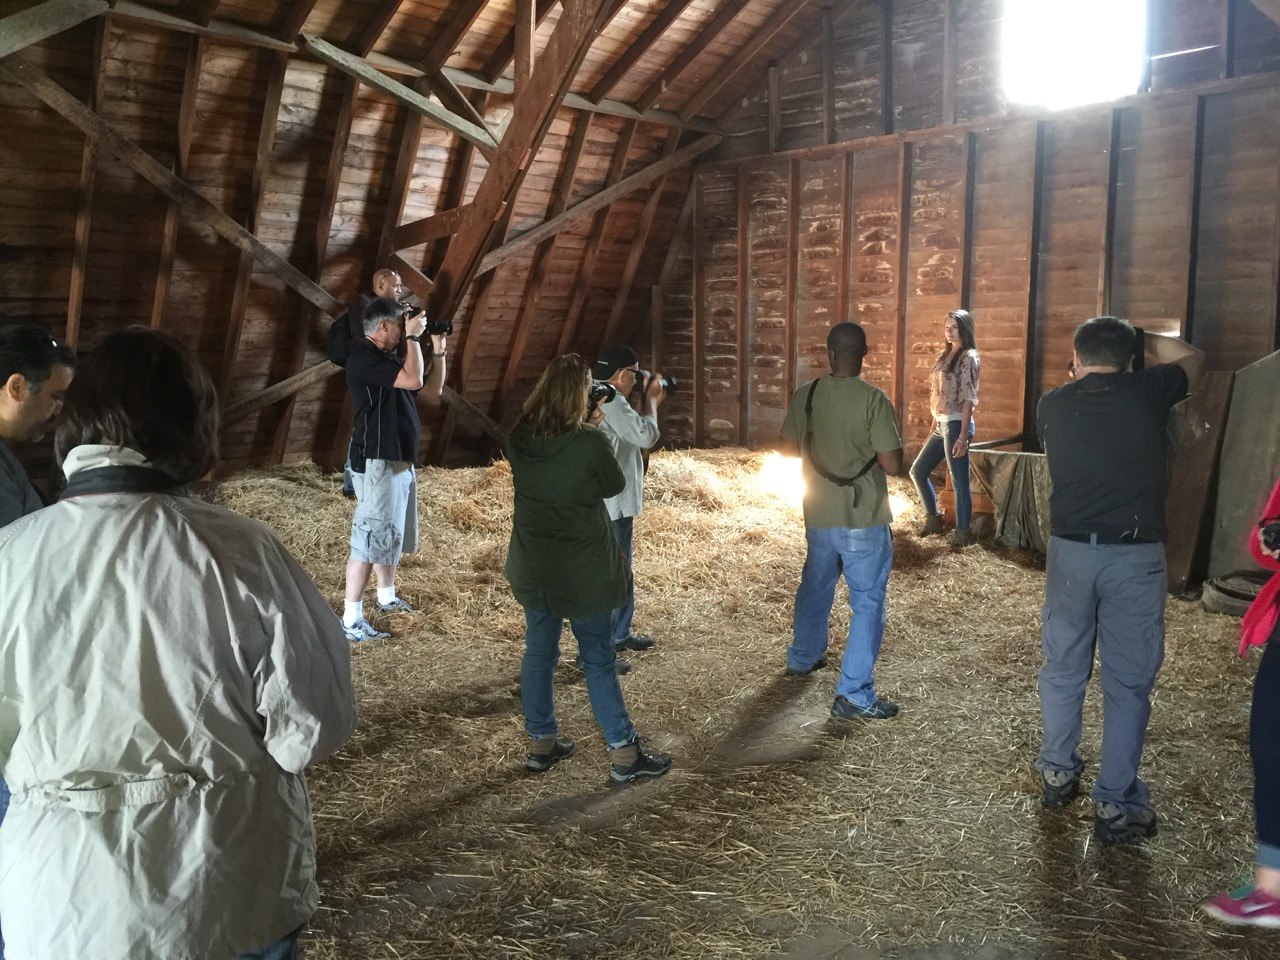 Free Shooting in the barn.